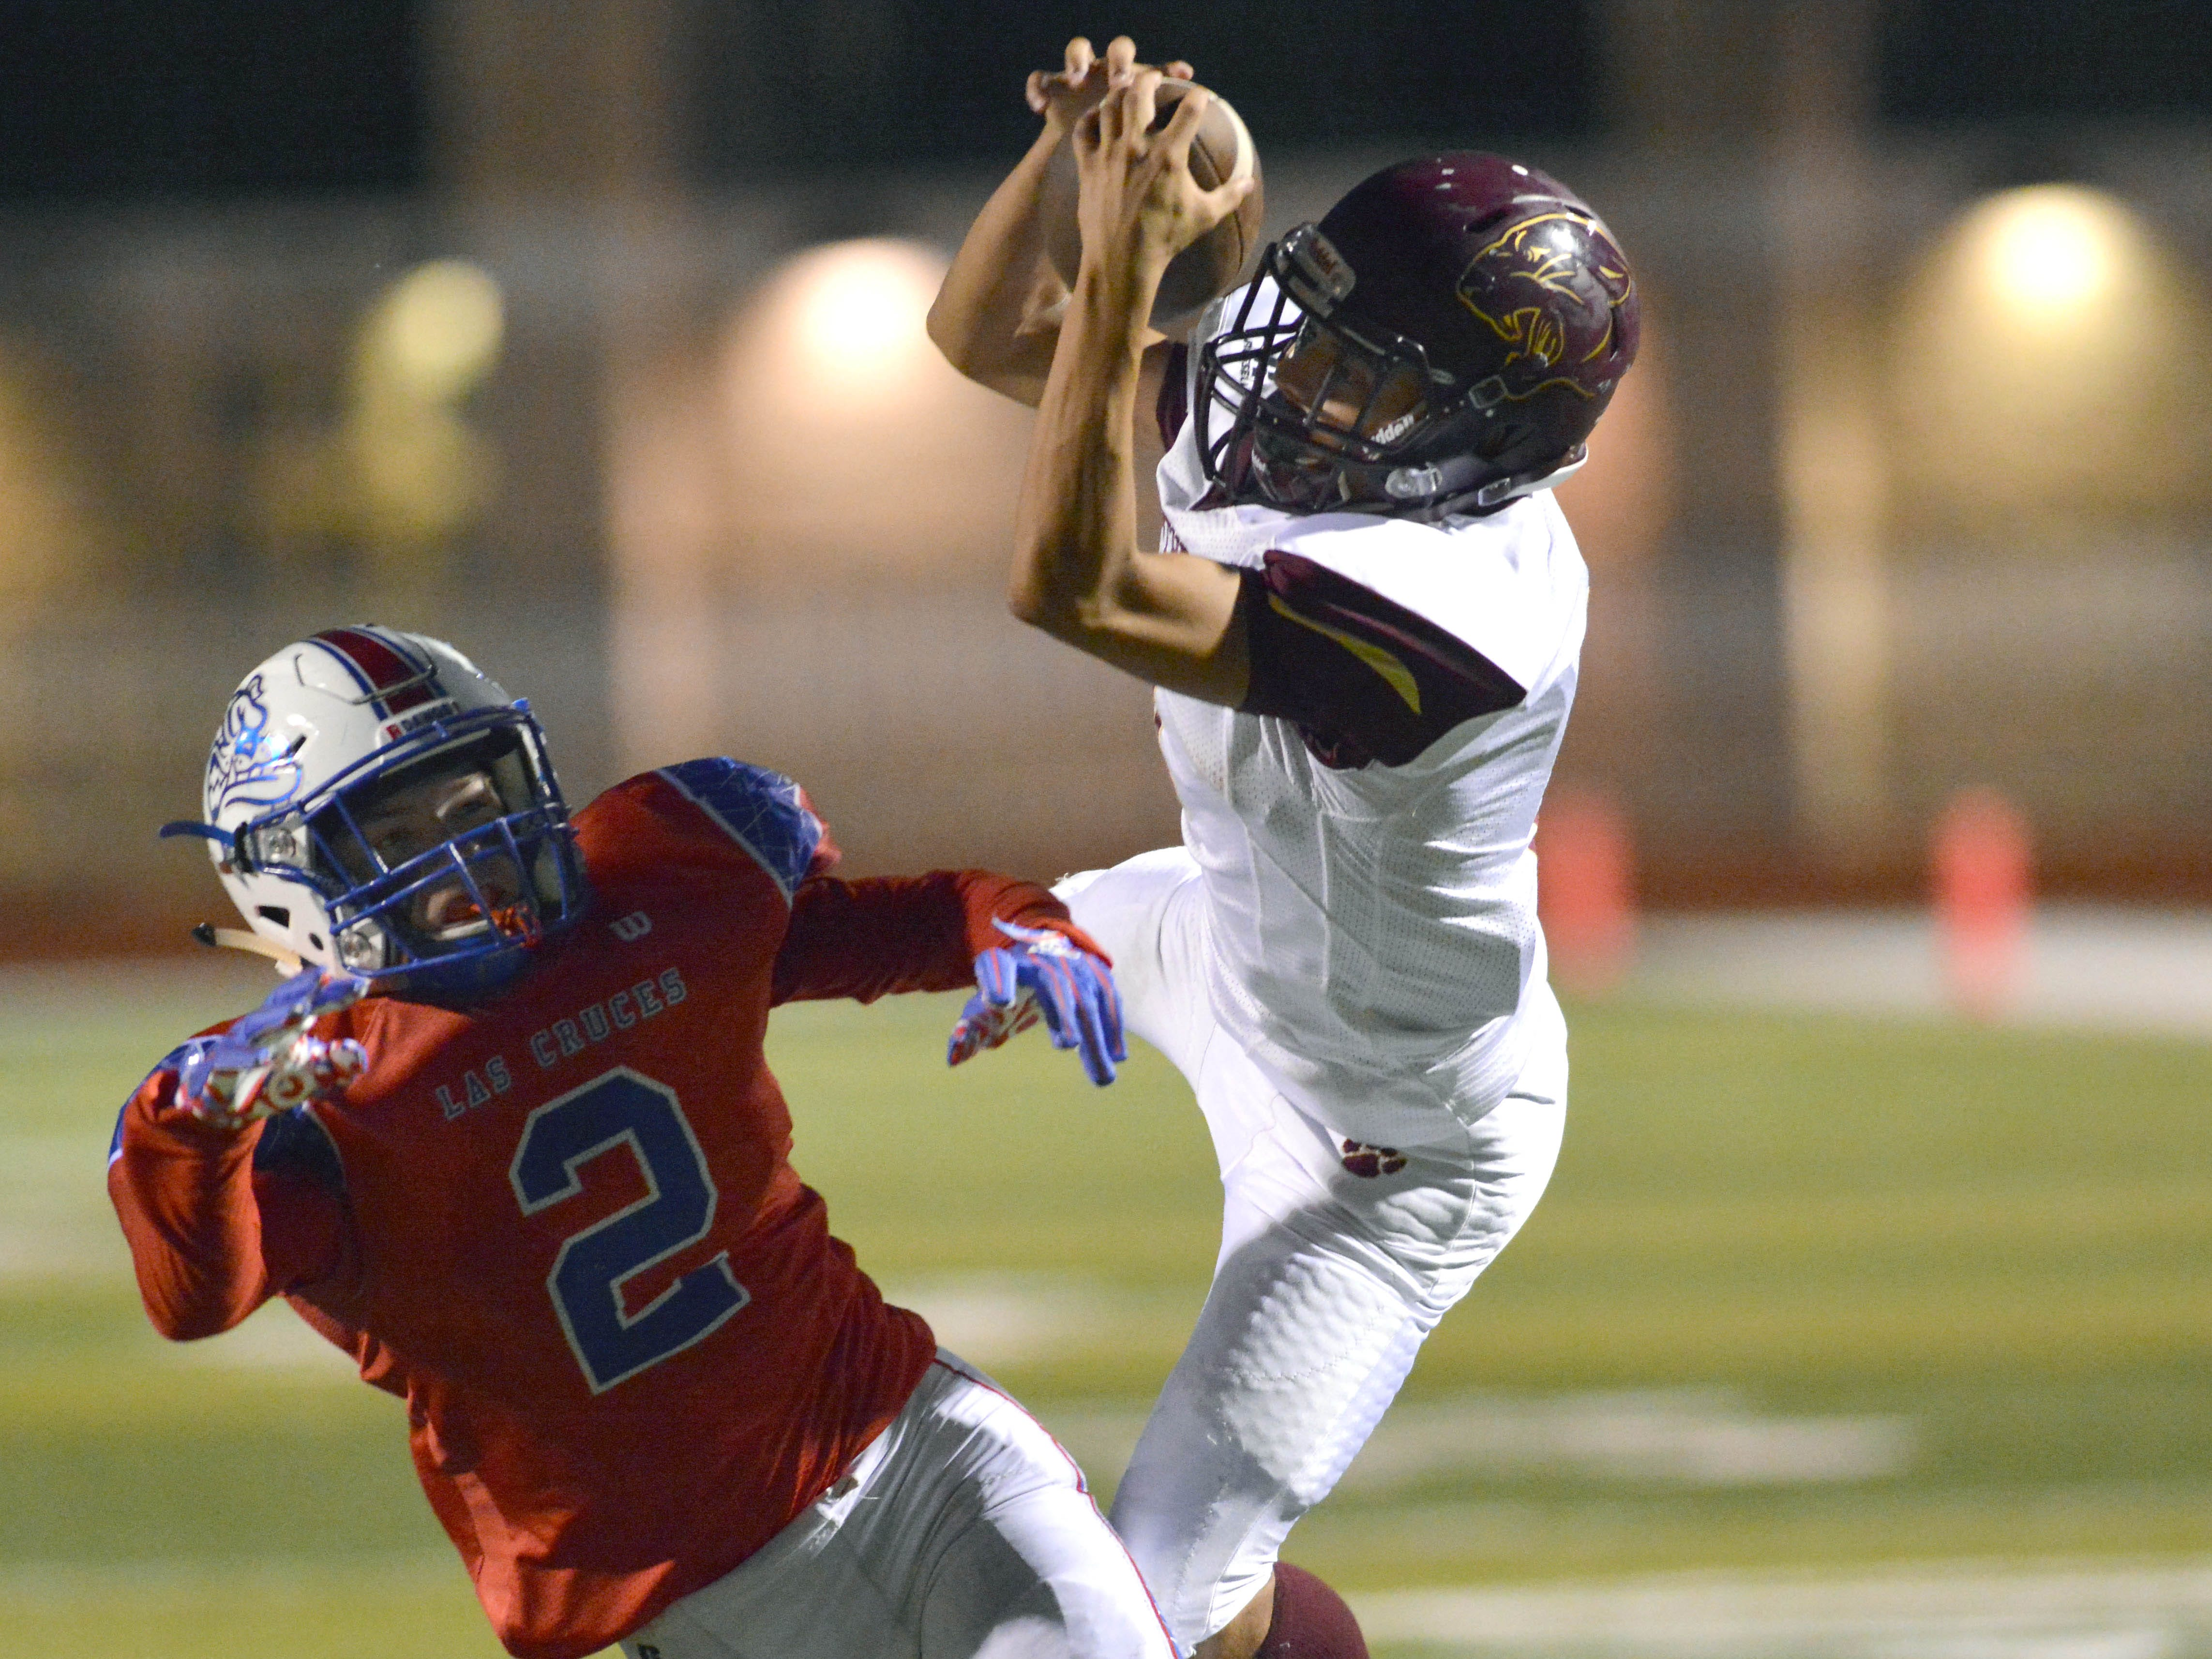 Gadsden defensive back Derrick Martinez goes up and intercepts a pass intended for Las Cruces High's Kennedy Aleman Thursday night at the Field of Dreams.